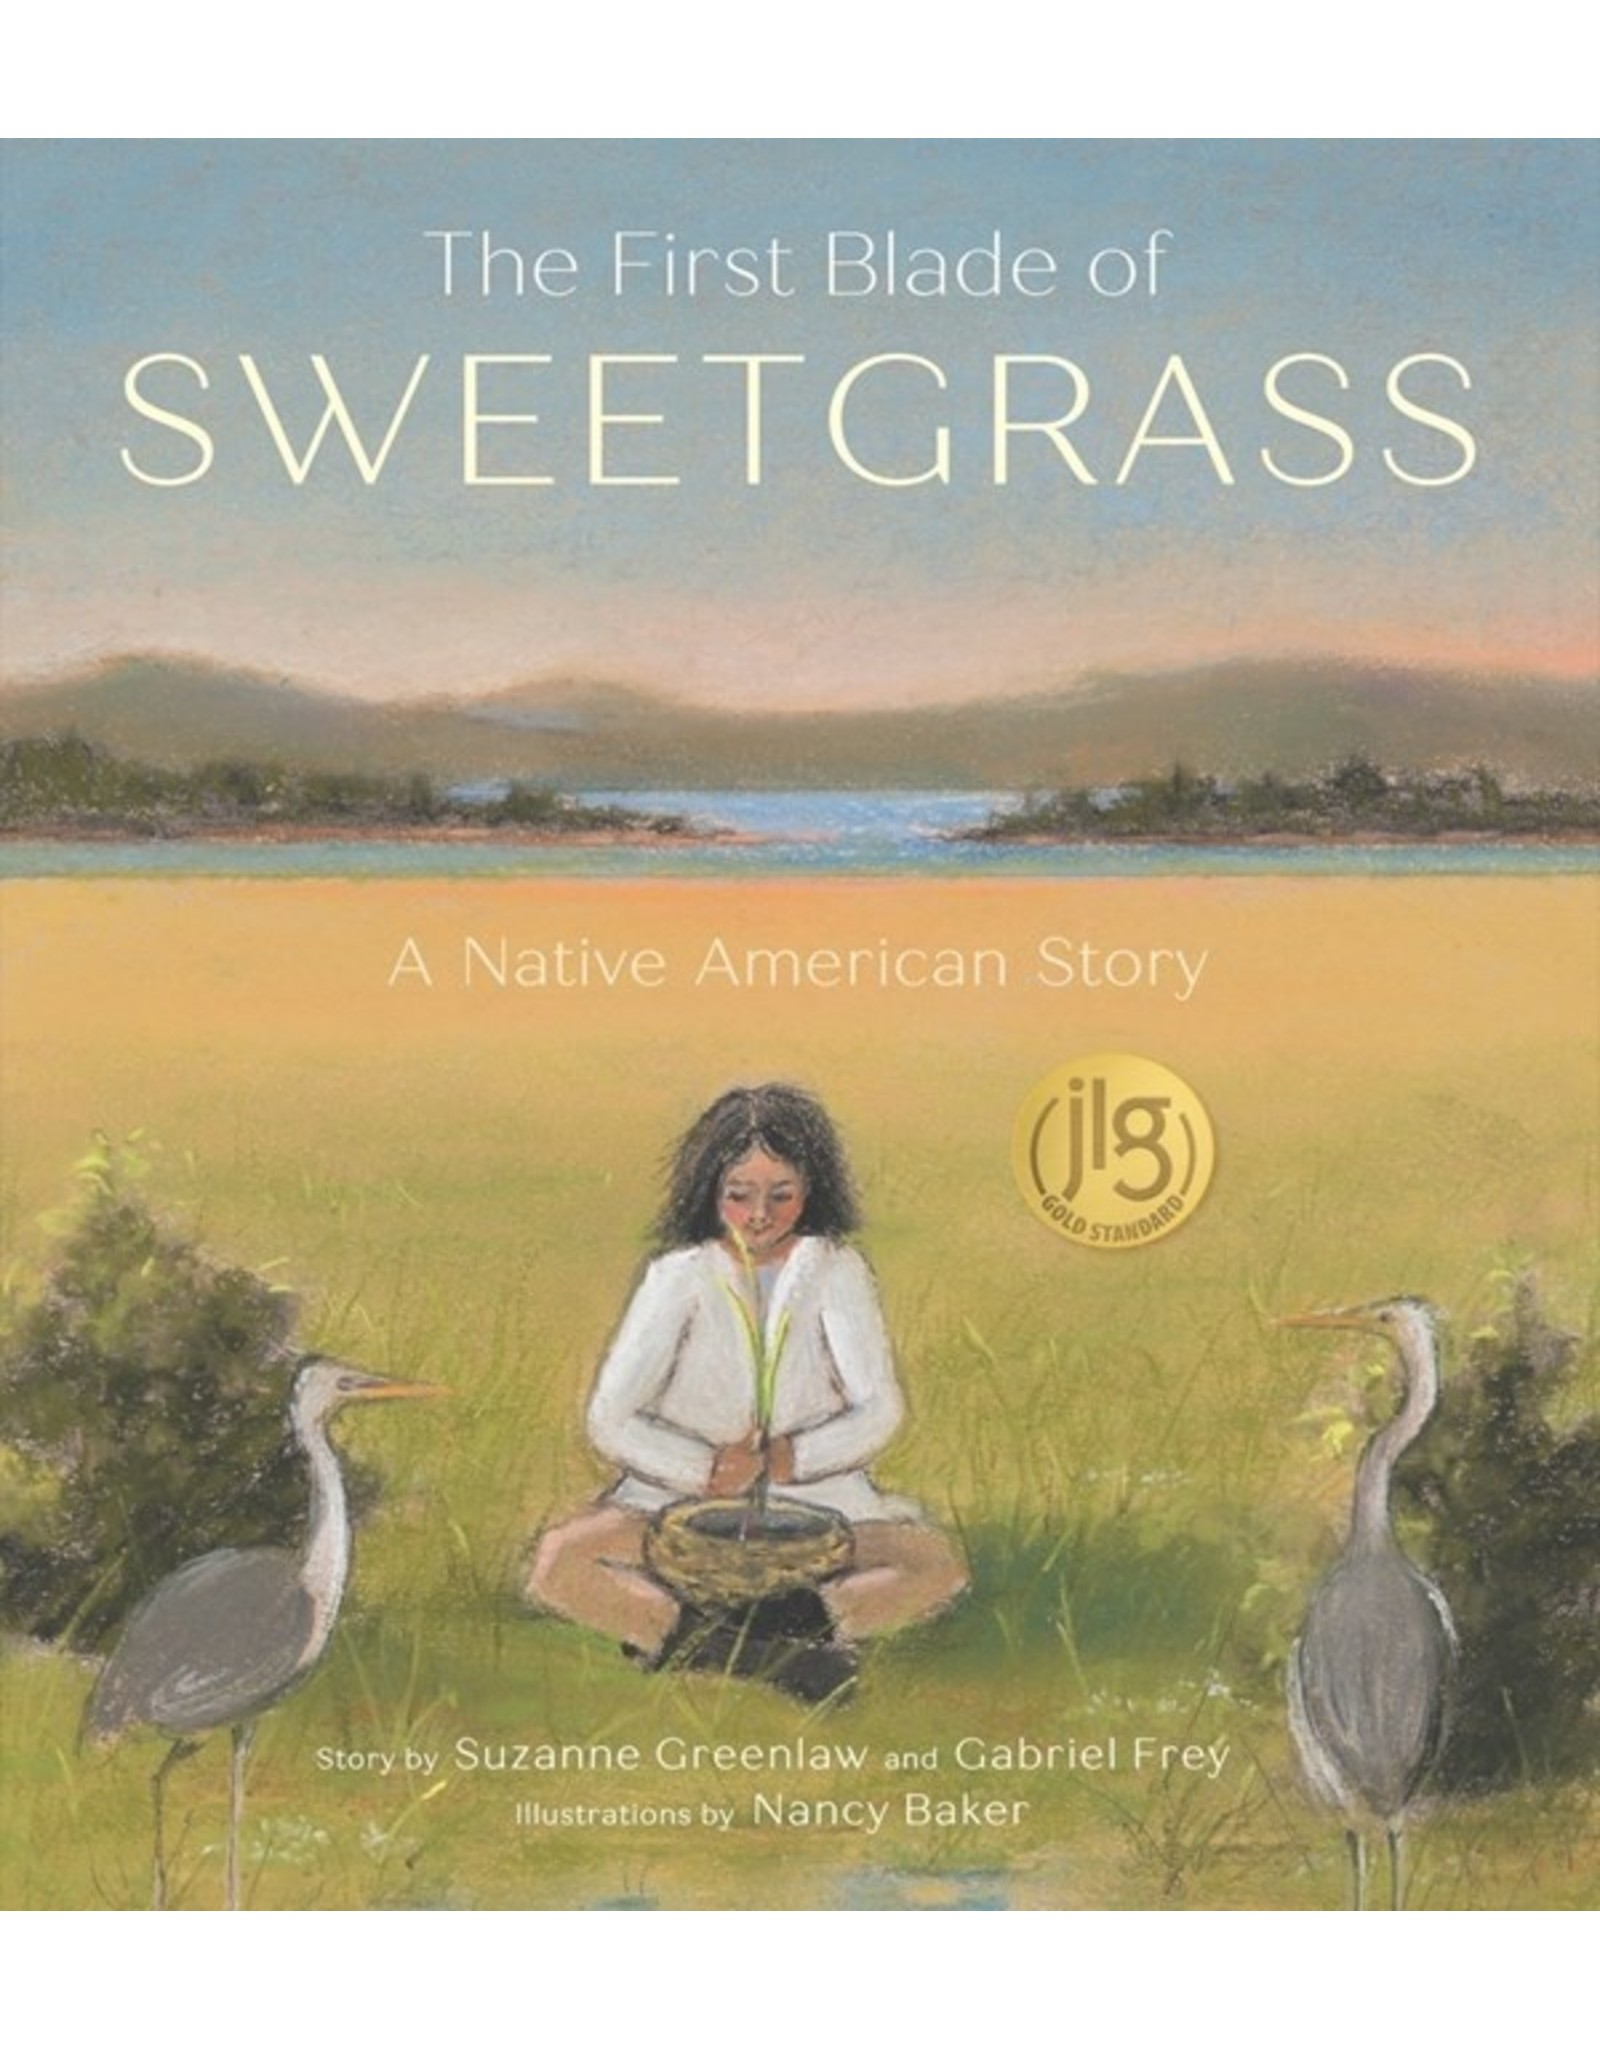 Books The First Blade of Sweetgrass: A Native American Story   story by Suzanne Greenlaw and Gabriel Frey